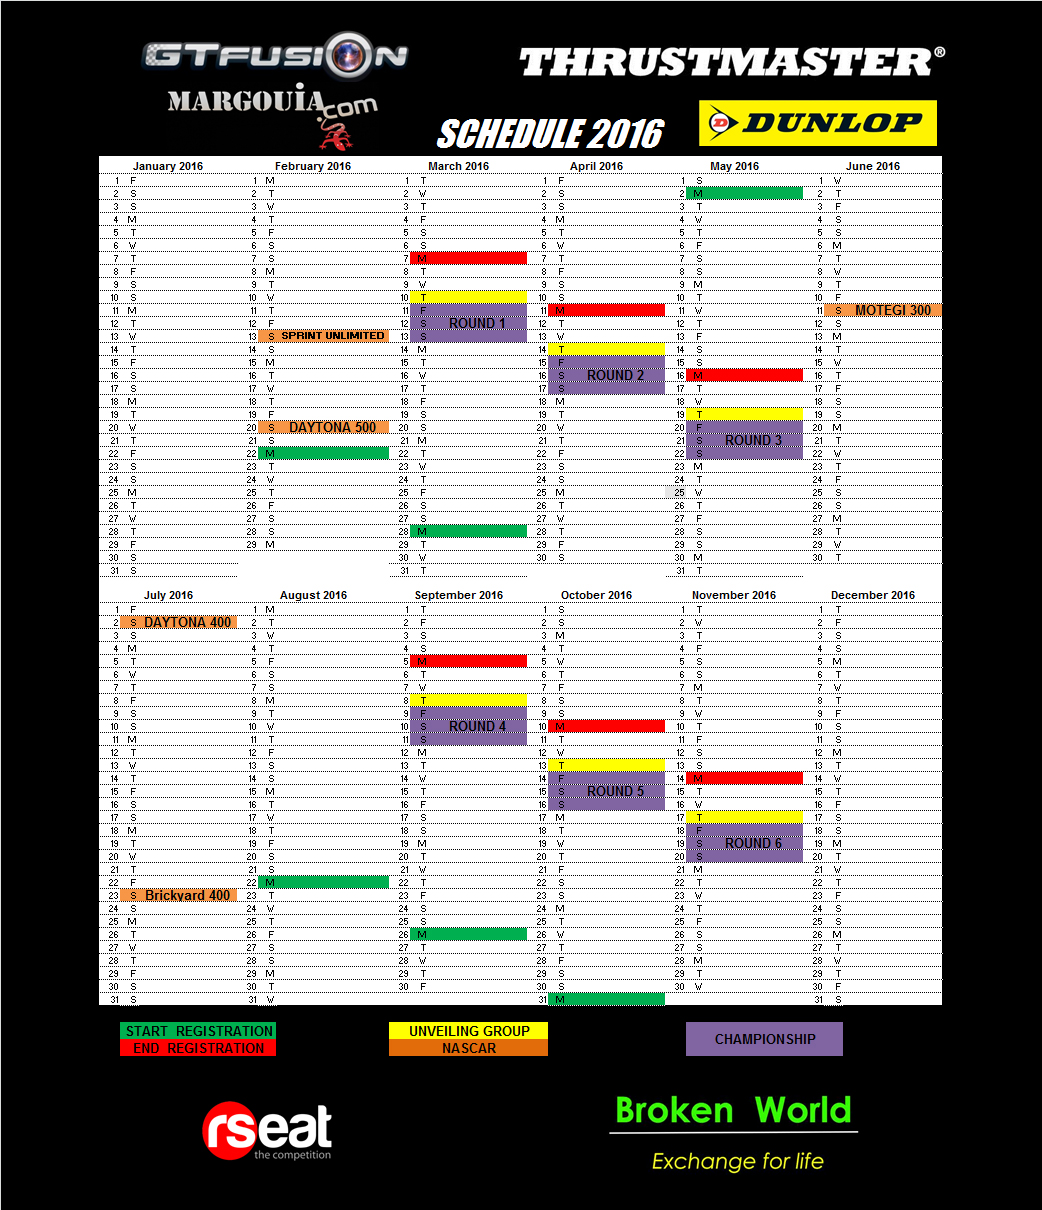 GTfusion 2016 Dunlop Thrustmaster R Seat Schedule2016